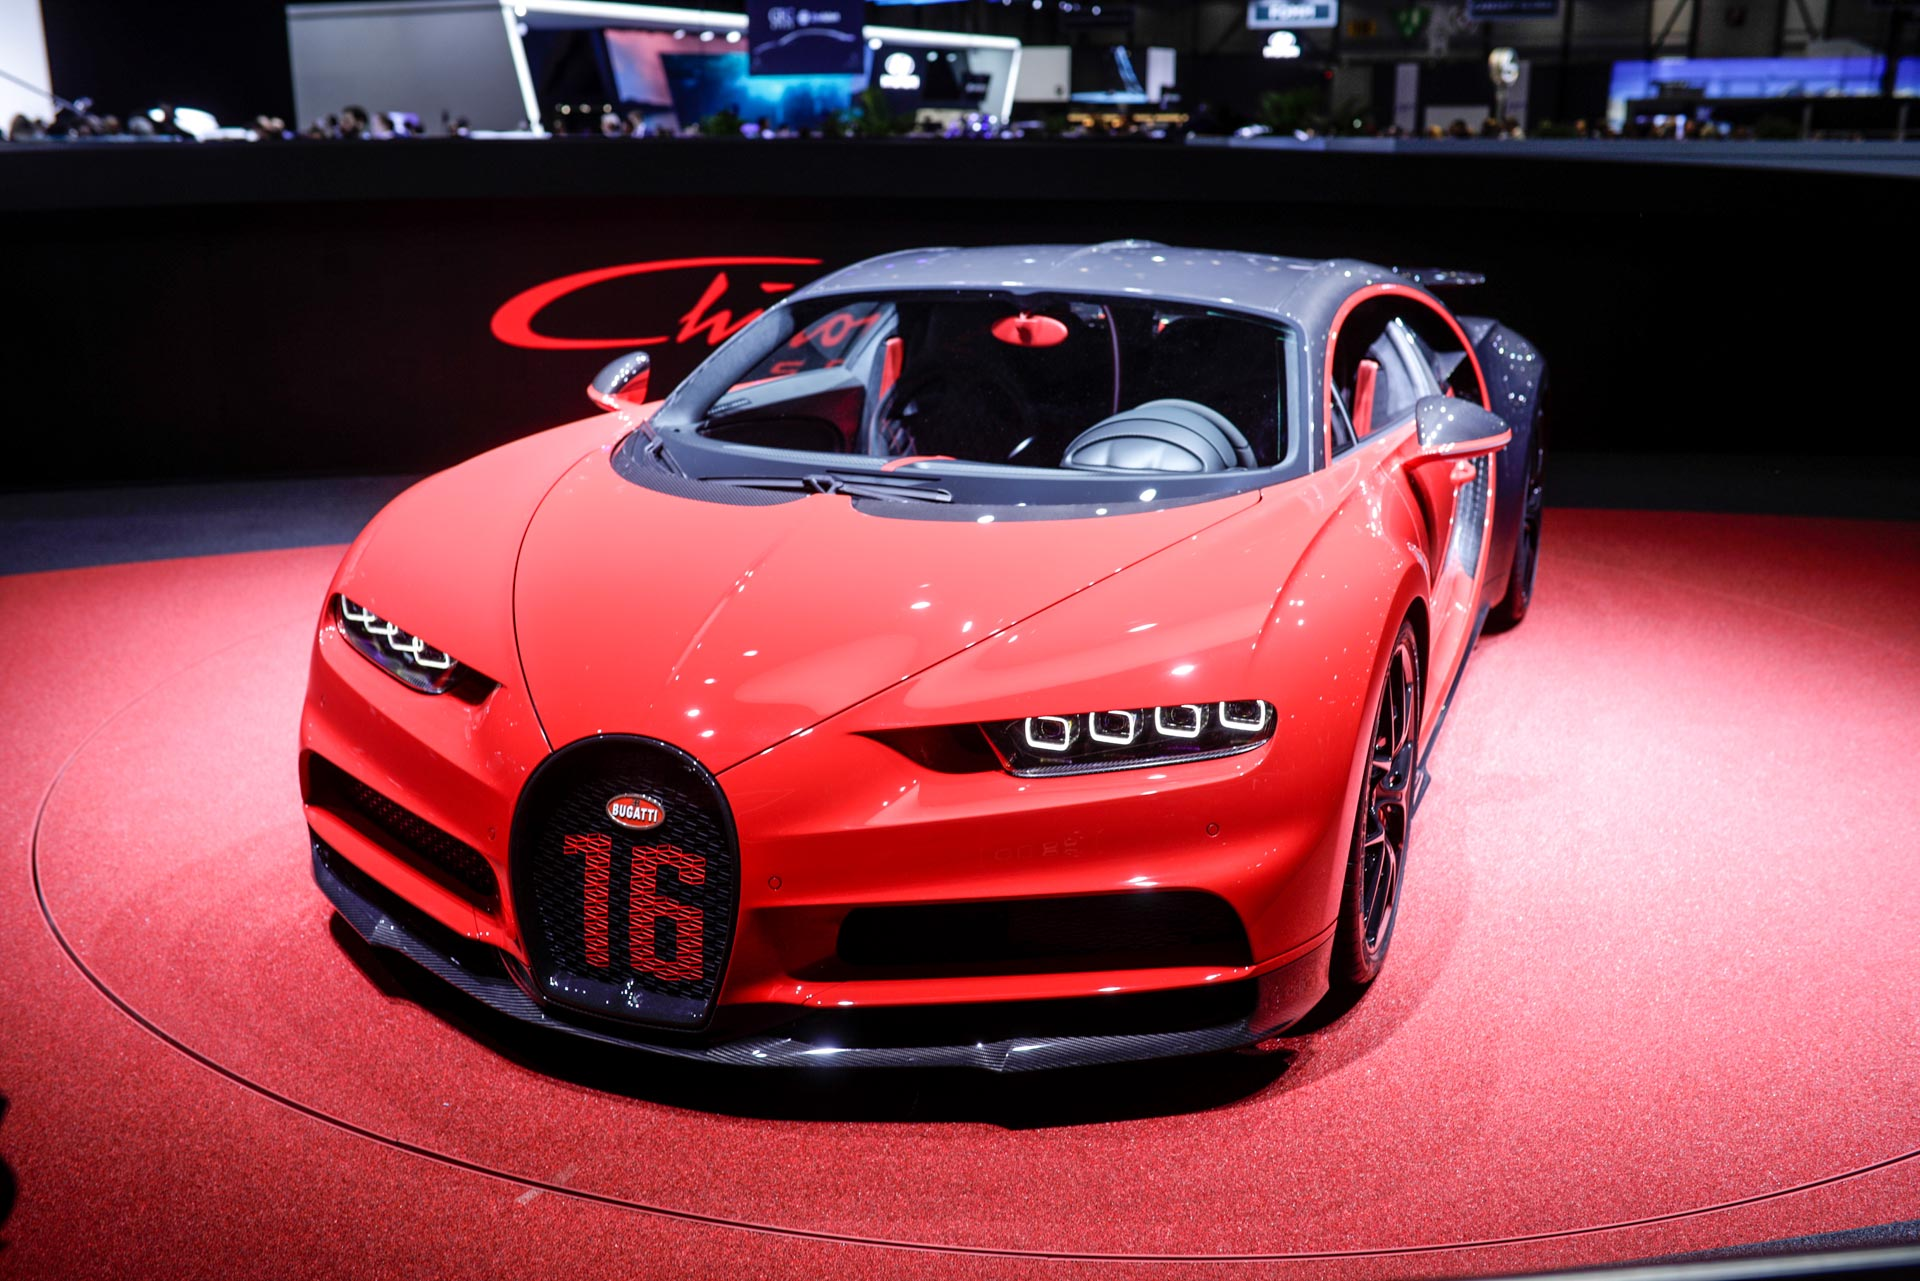 bugatti chiron james may with Geneva Motor Show 2018 Bugatti Chiron Sport on The 10 Fastest Sports Cars Of 2018 moreover Geneva Motor Show 2018 Bugatti Chiron Sport also 447756387923243453 as well Drakes Bugatti Veyron Sang Noir Hits The Used Car Market additionally Bugatti Divo Revealed.